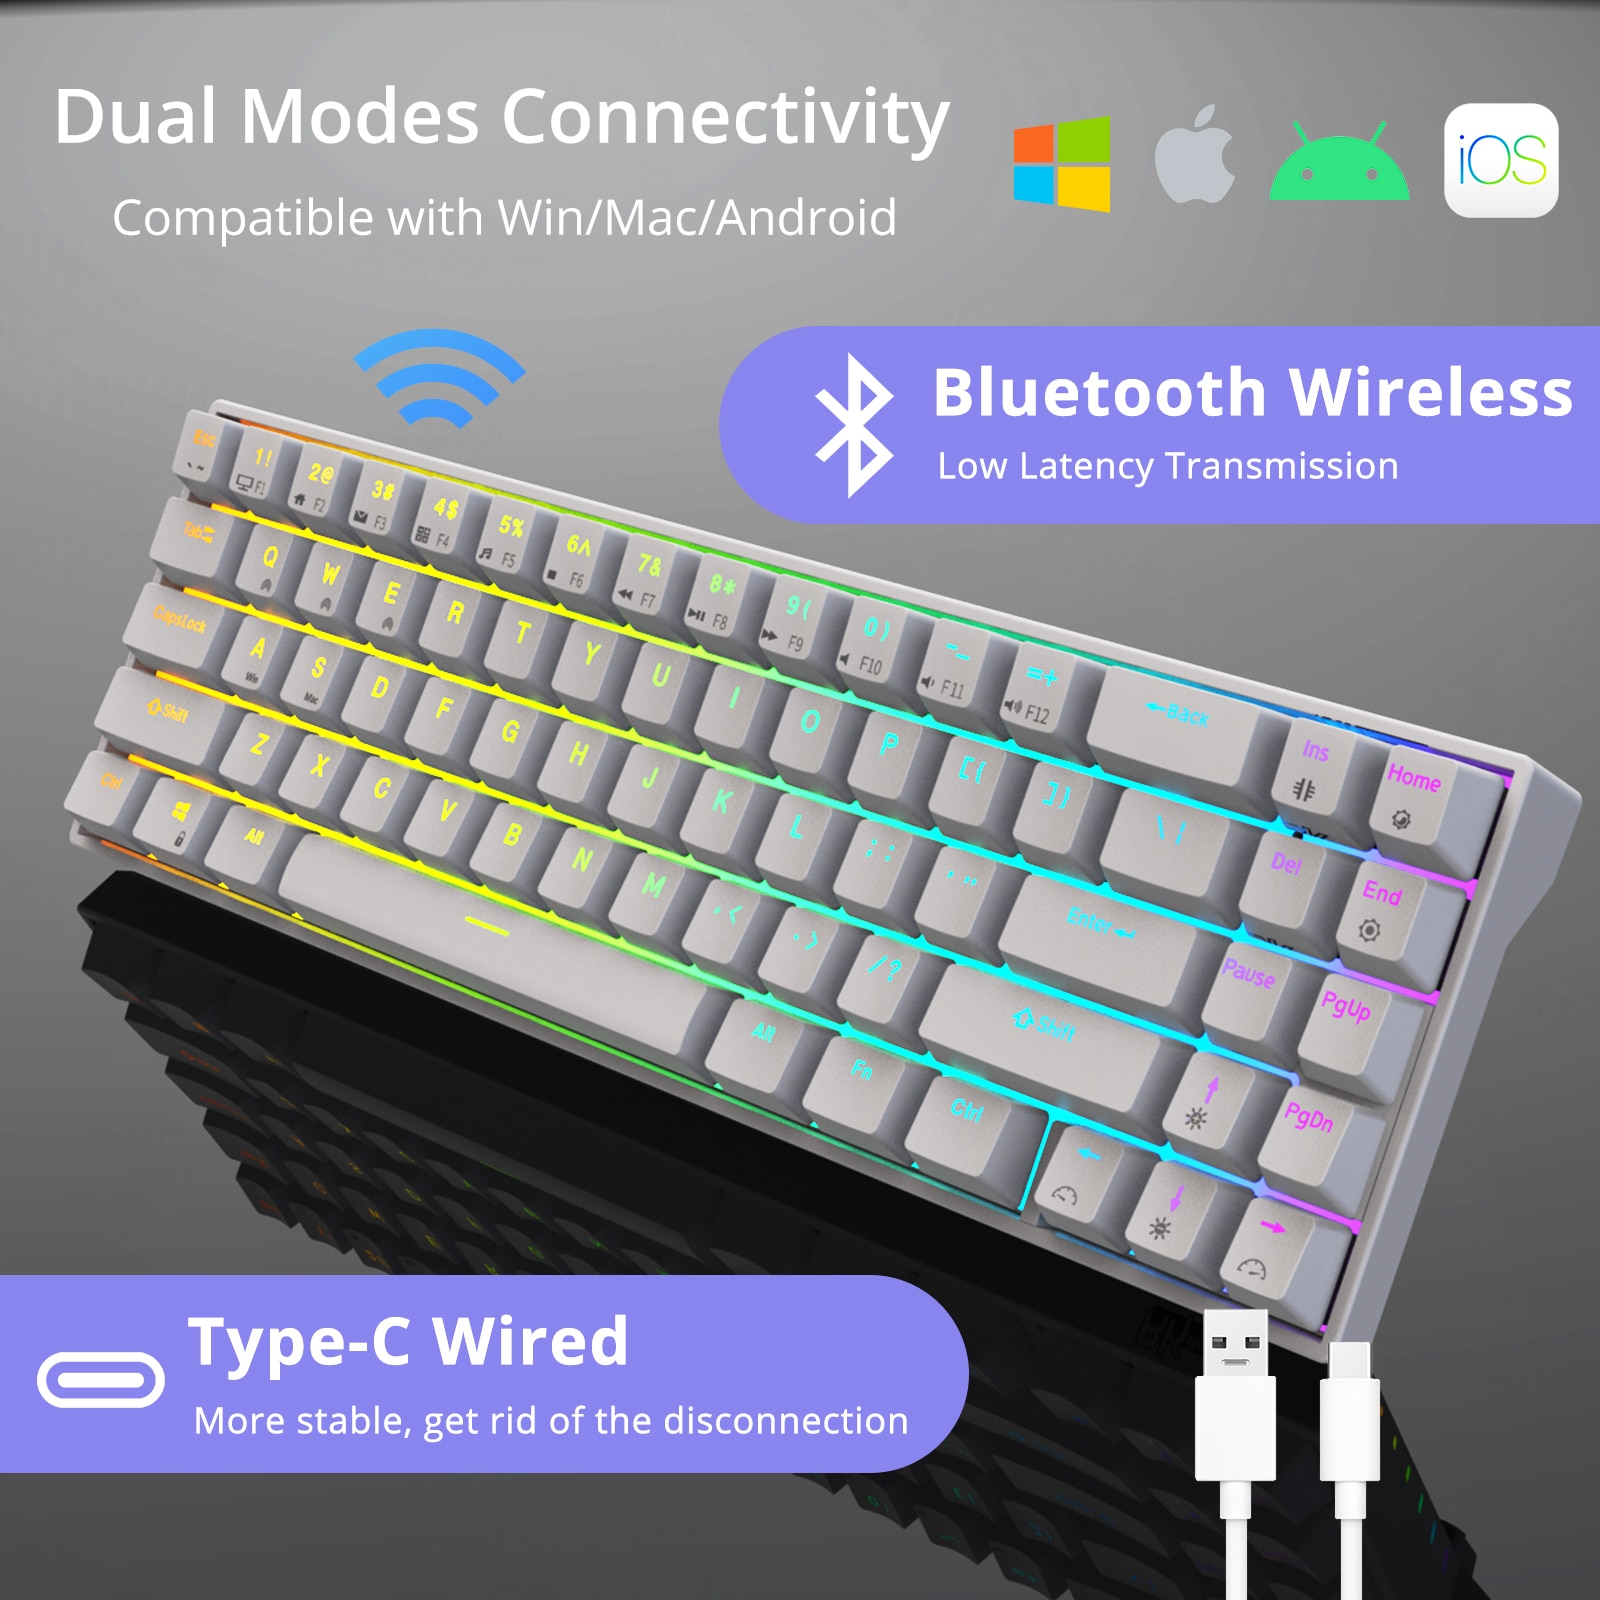 RK71 RGB 70%  Hot swappable Mechanical Keyboard, 71 Keys Bluetooth Small Portable Gaming Office Keyboard for Windows and Mac